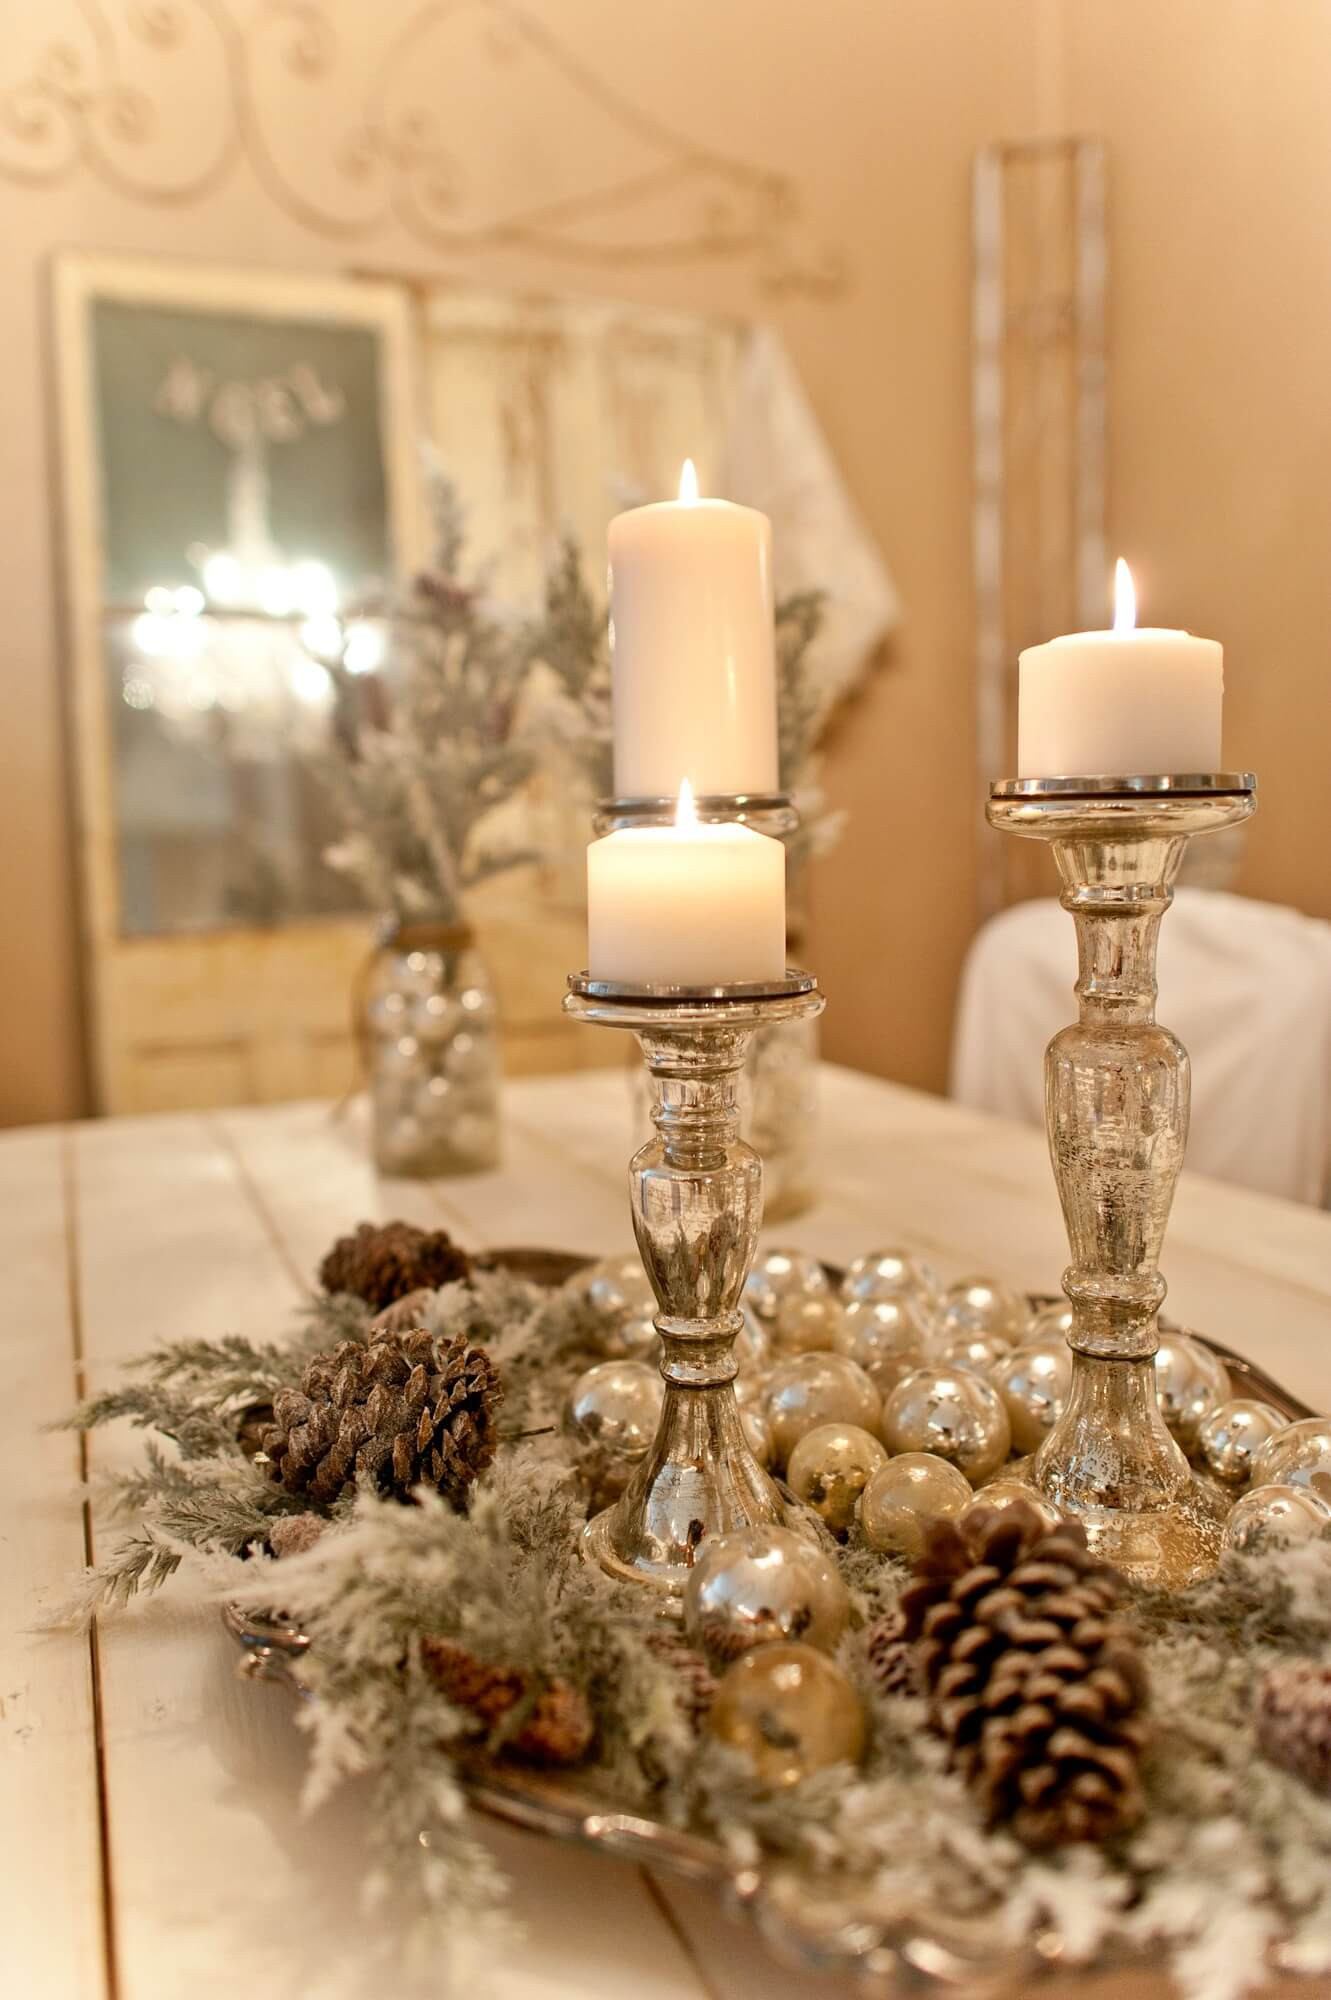 Best ideas about DIY Christmas Centerpieces . Save or Pin 28 Best DIY Christmas Centerpieces Ideas and Designs for Now.